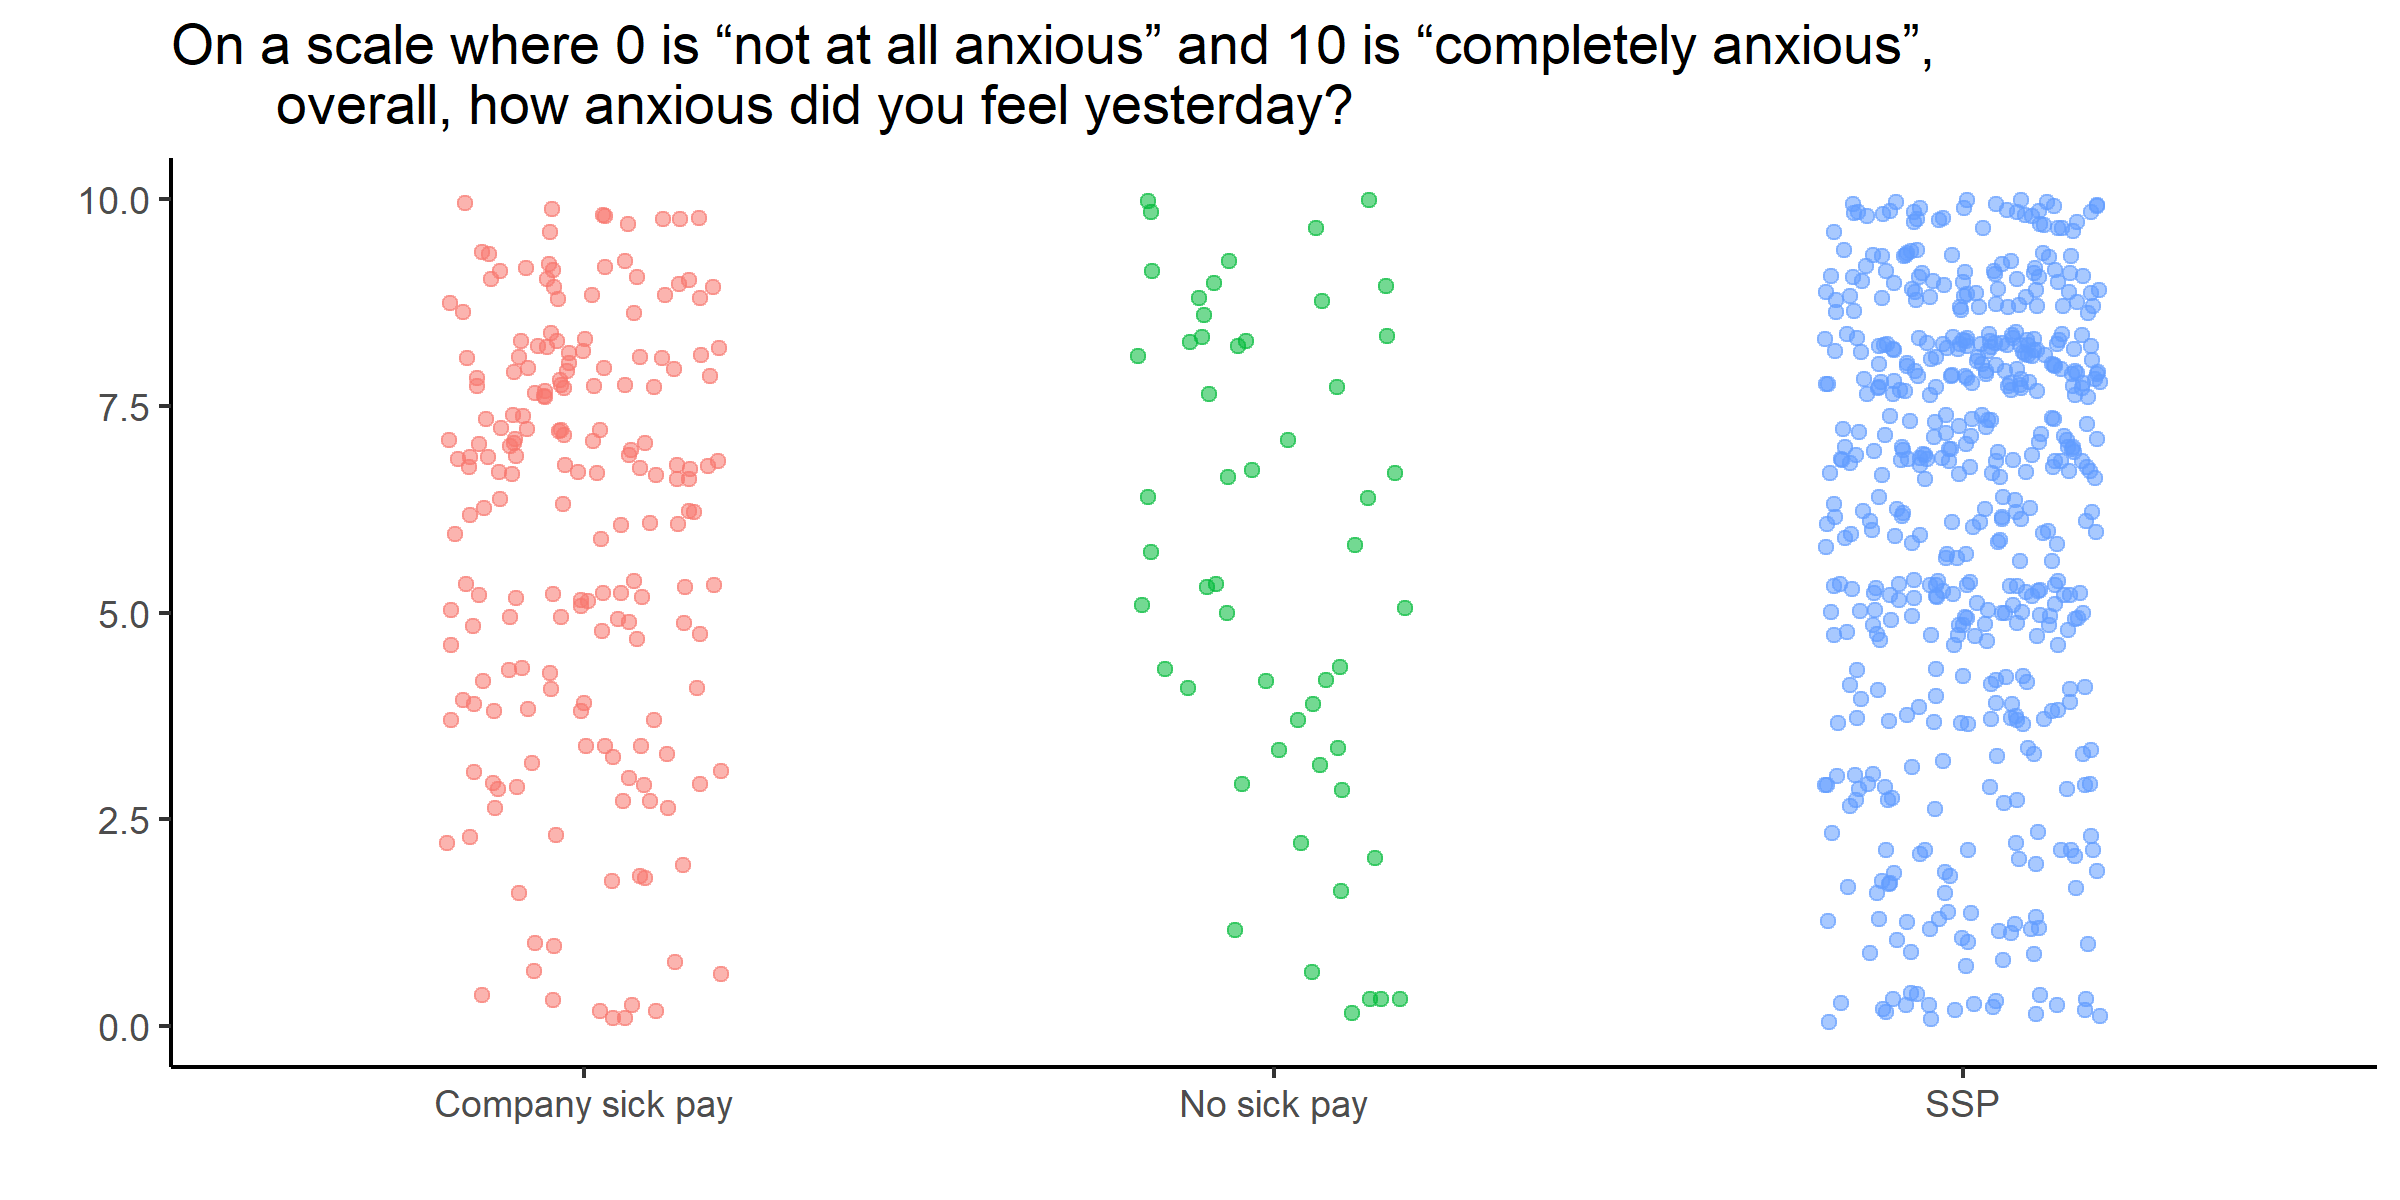 Scatter graph showing that care workers on Statutory Sick Pay were more likely to report significantly higher anxiety levels